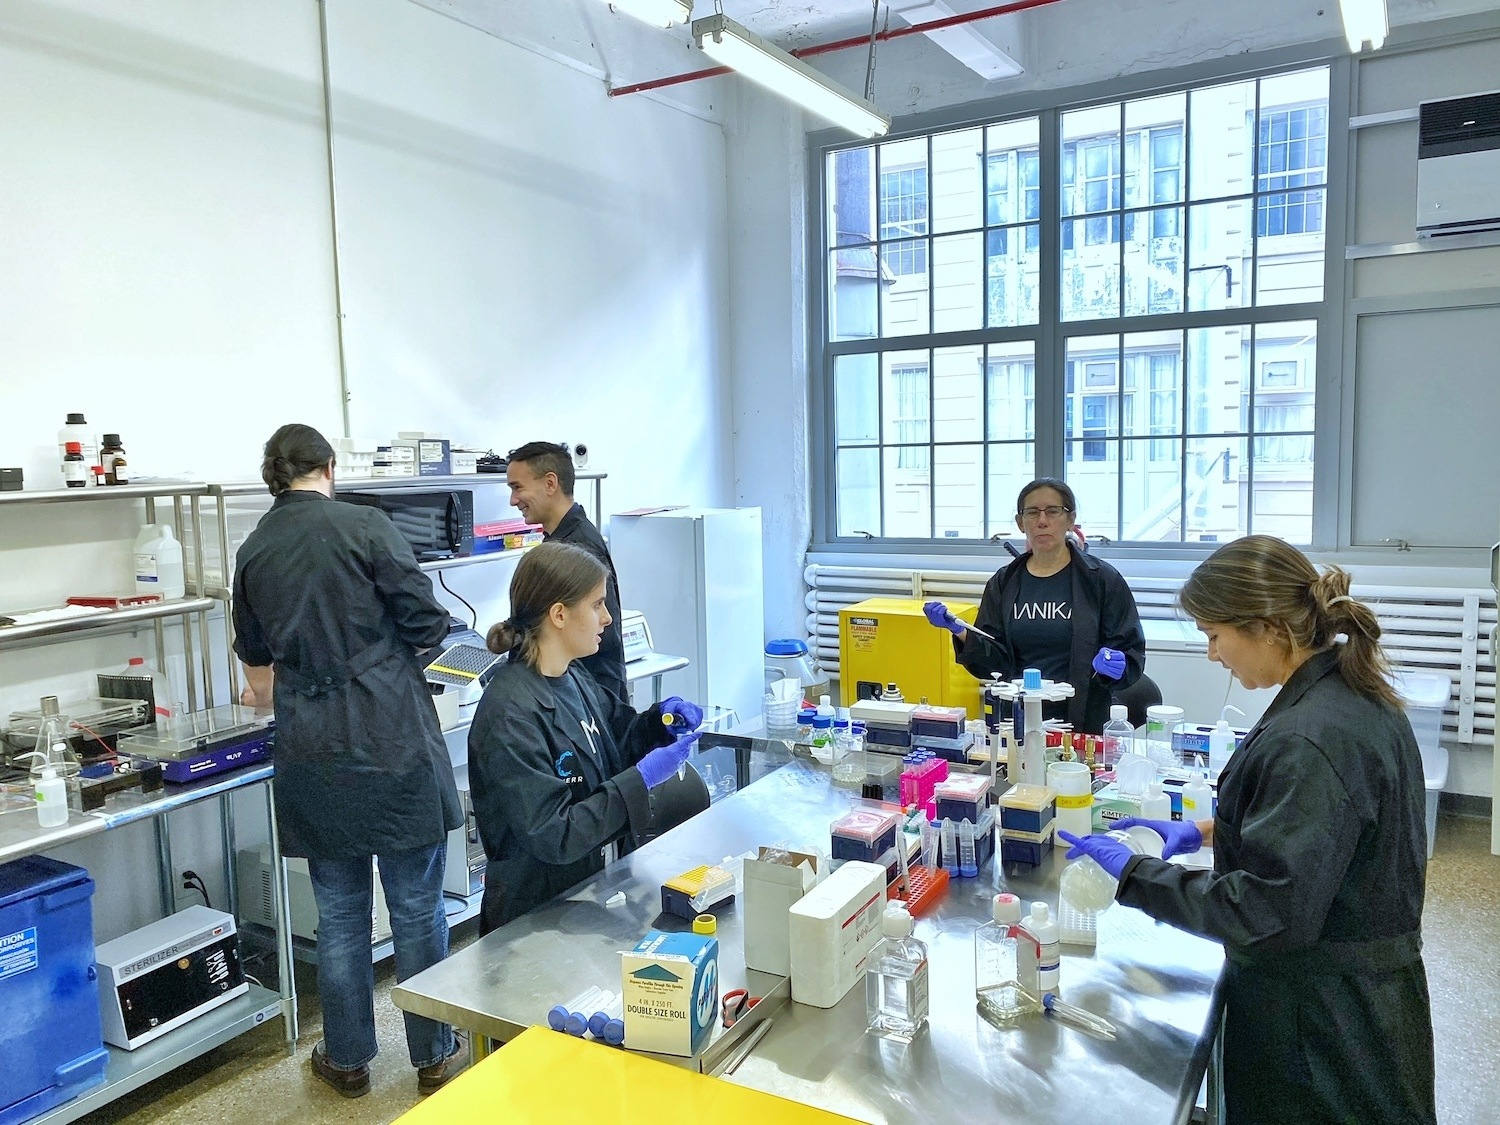 Aanika Biosciences employees working in the company's laboratory, located in Brooklyn. January 2021